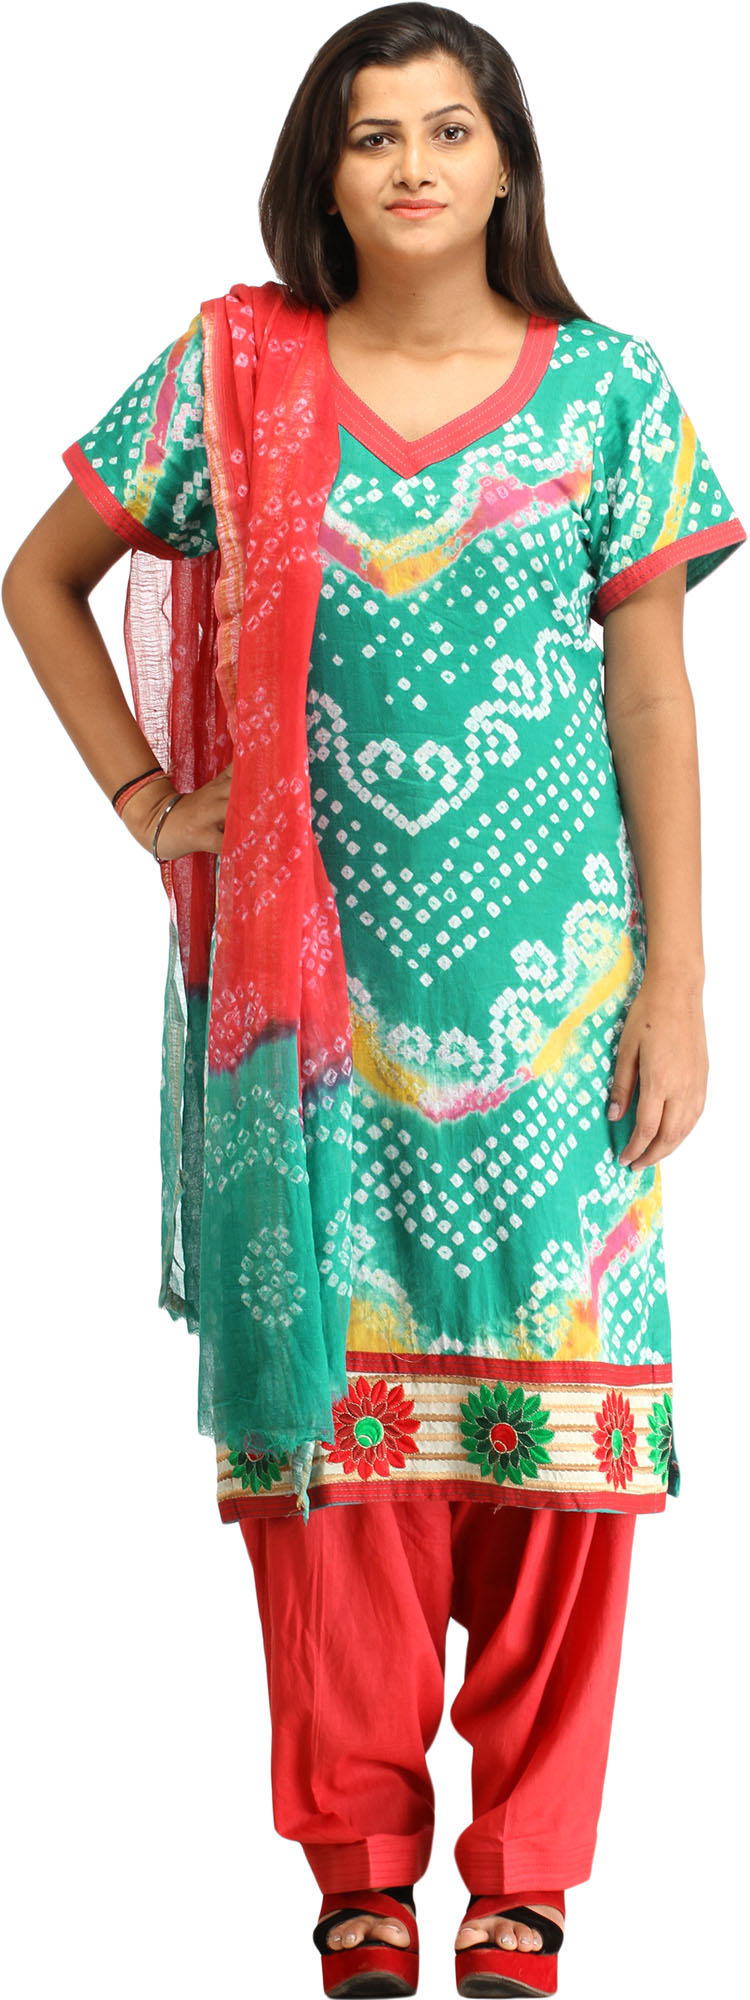 Green and red bandhani tie dye salwar kameez suit from